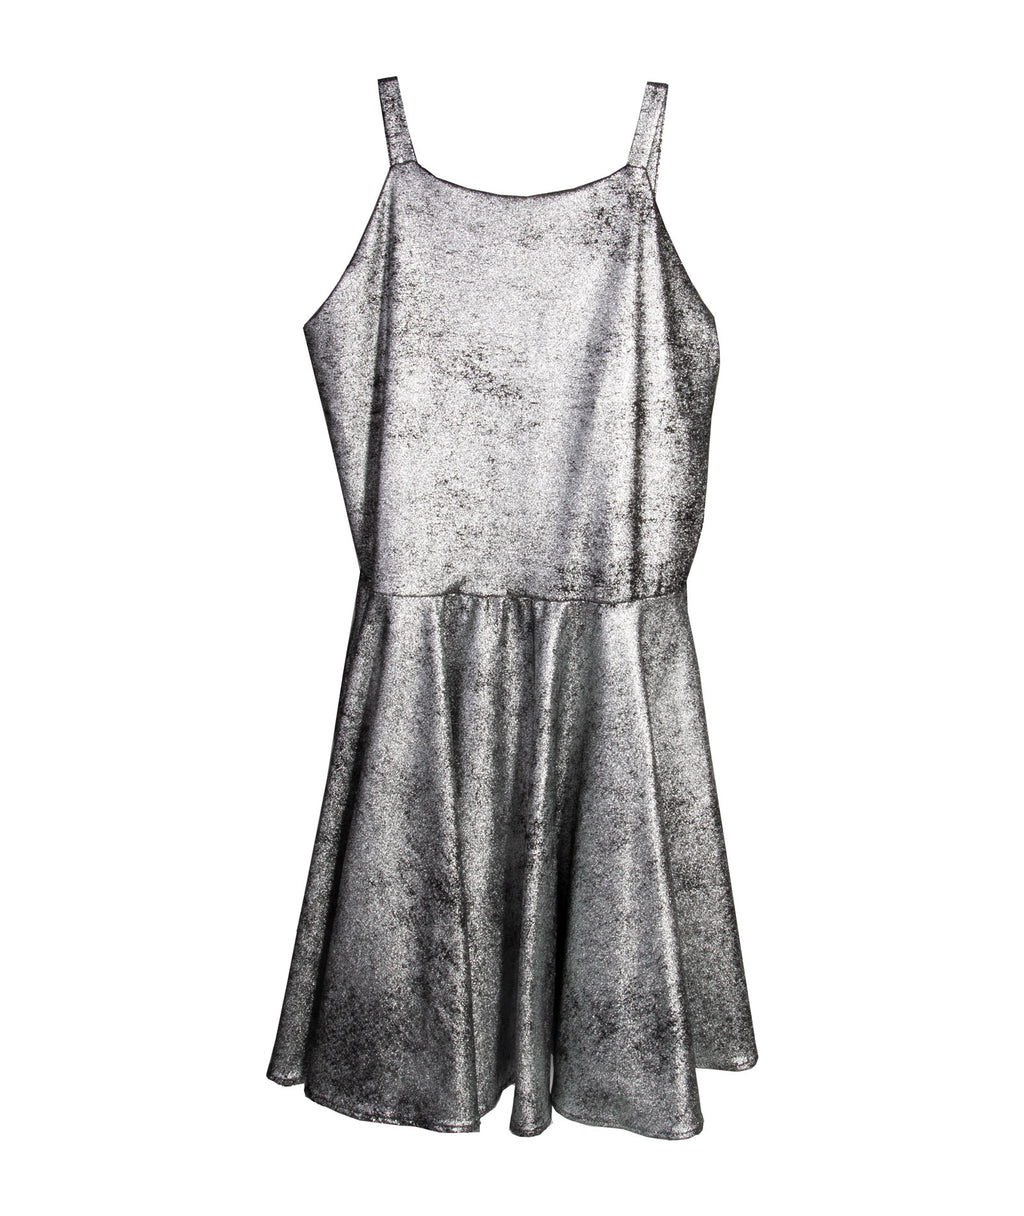 By Debra Girls Sleeveless Black/ Silver Dress